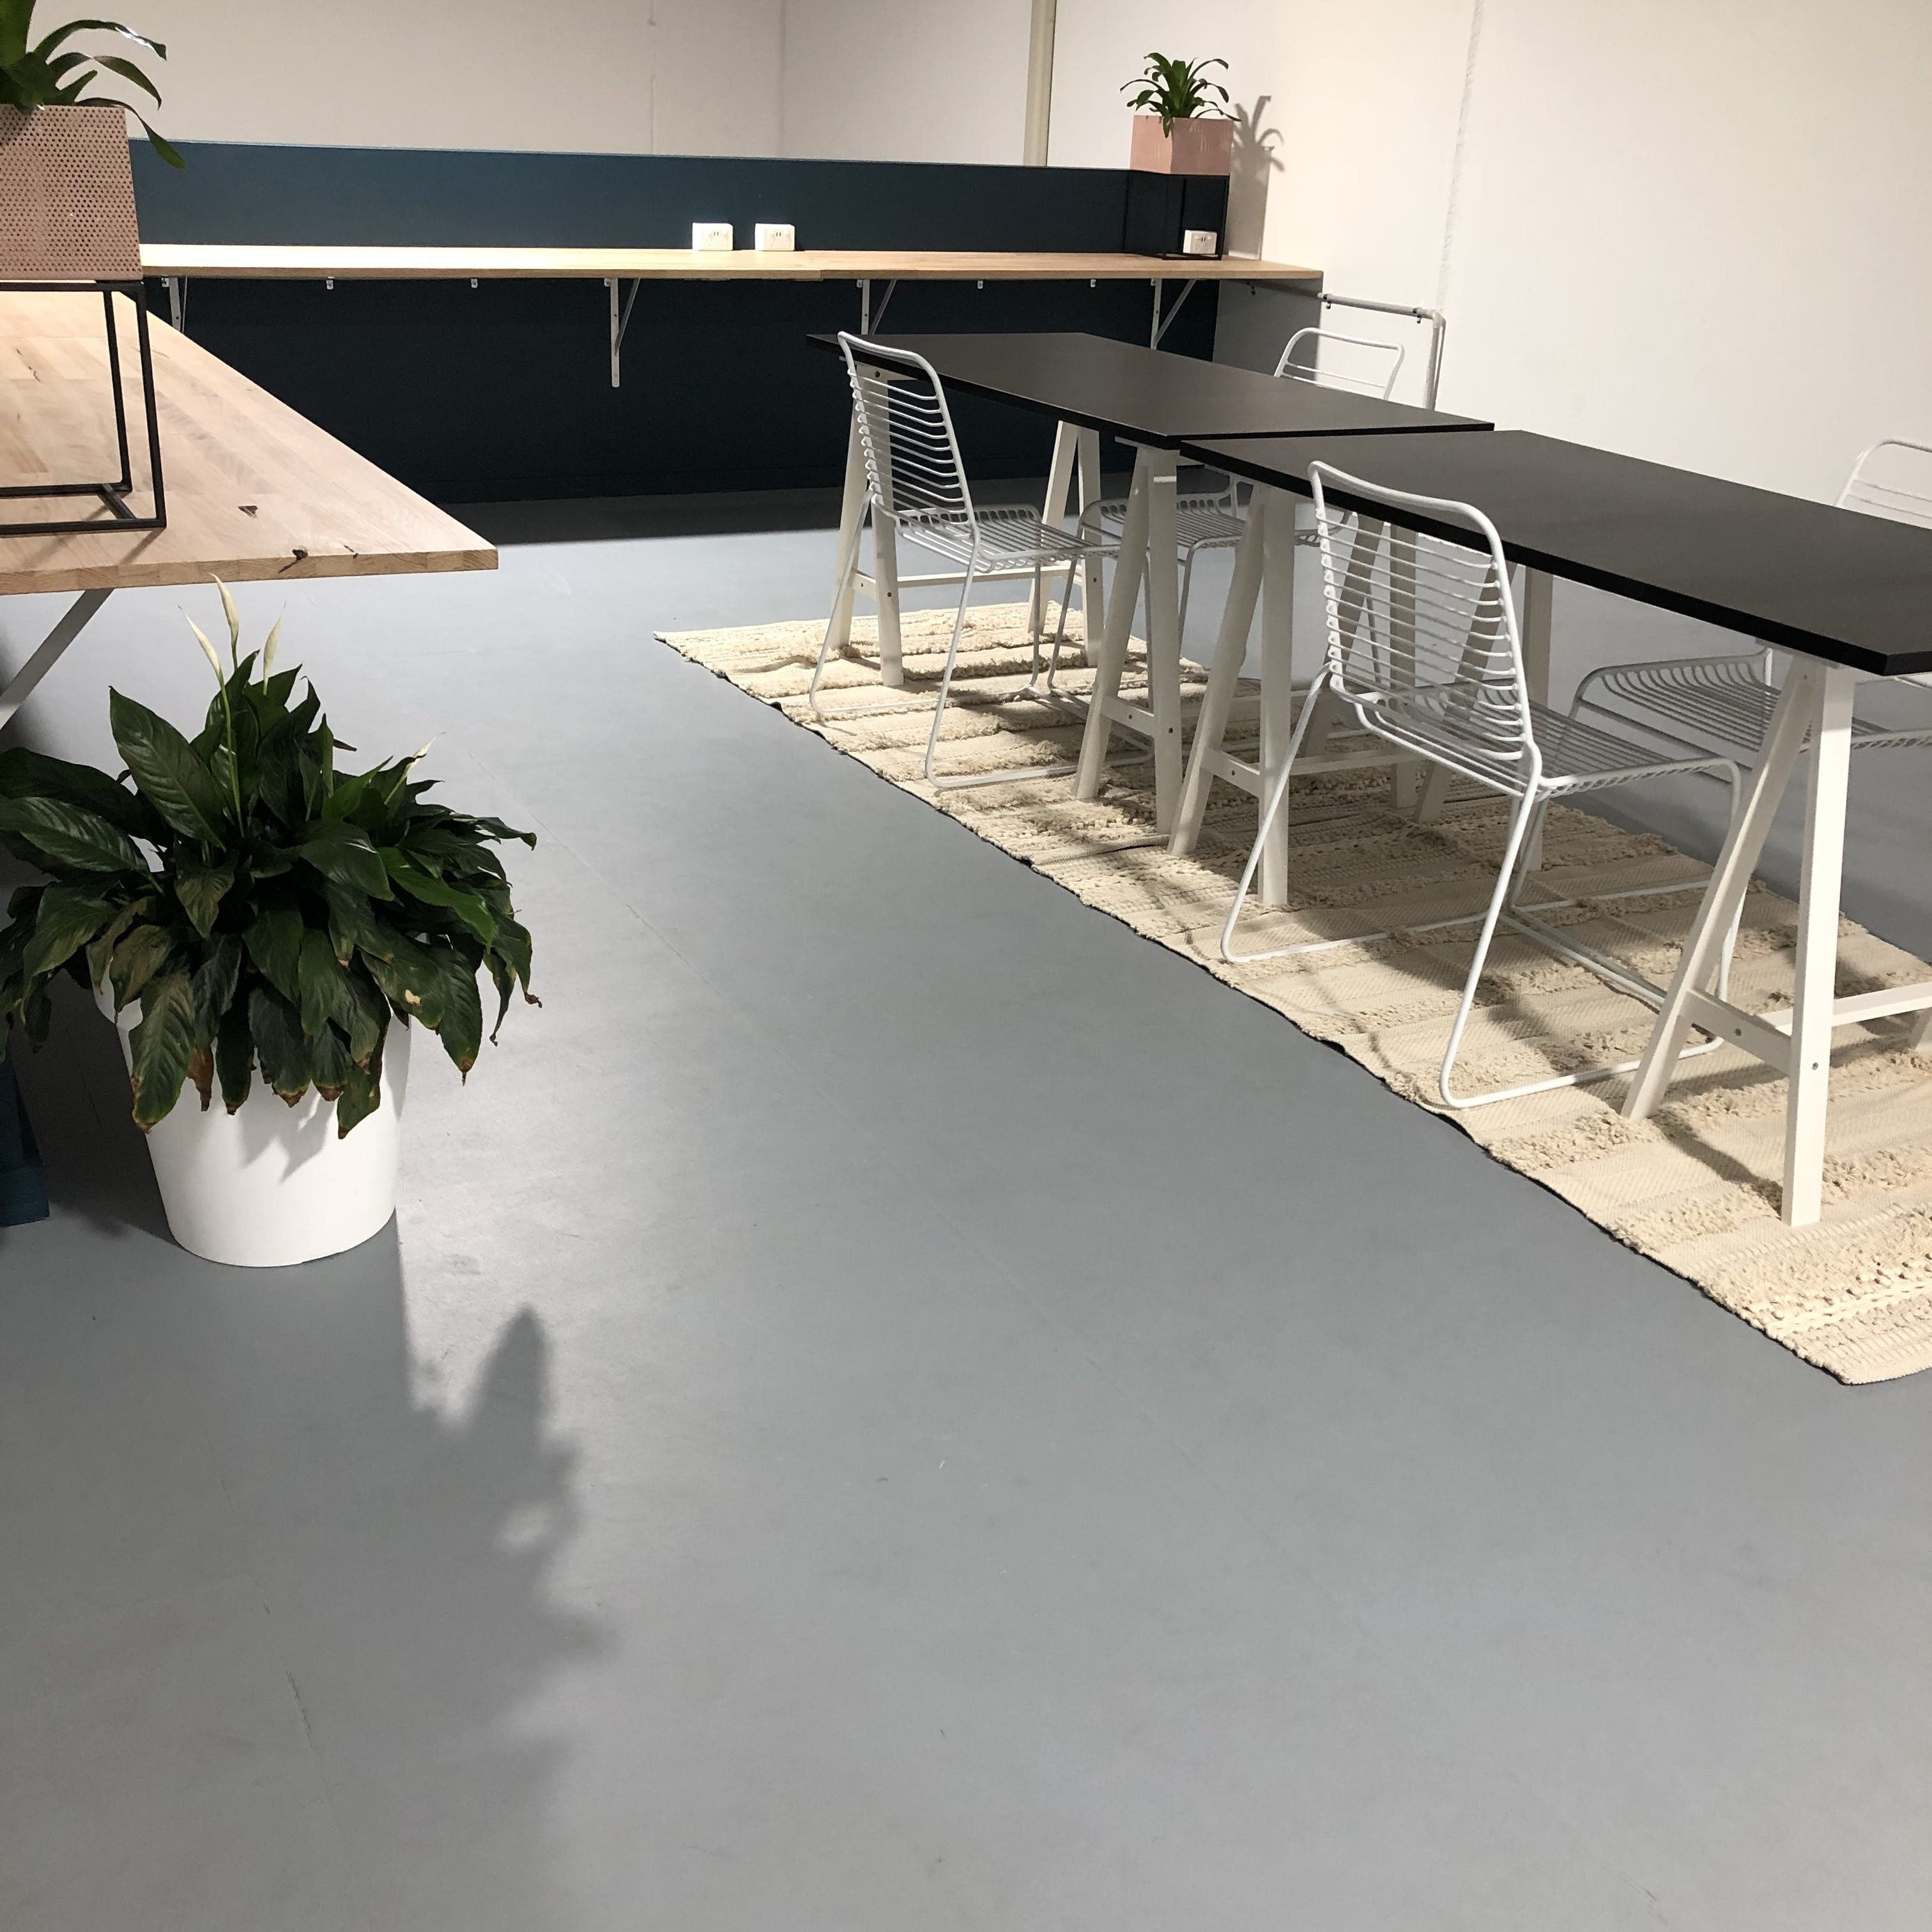 Event Space All Weekend Saturday AND Sunday, multi-use area at Bridge Coworking Meeting and Event Space Geelong, image 1